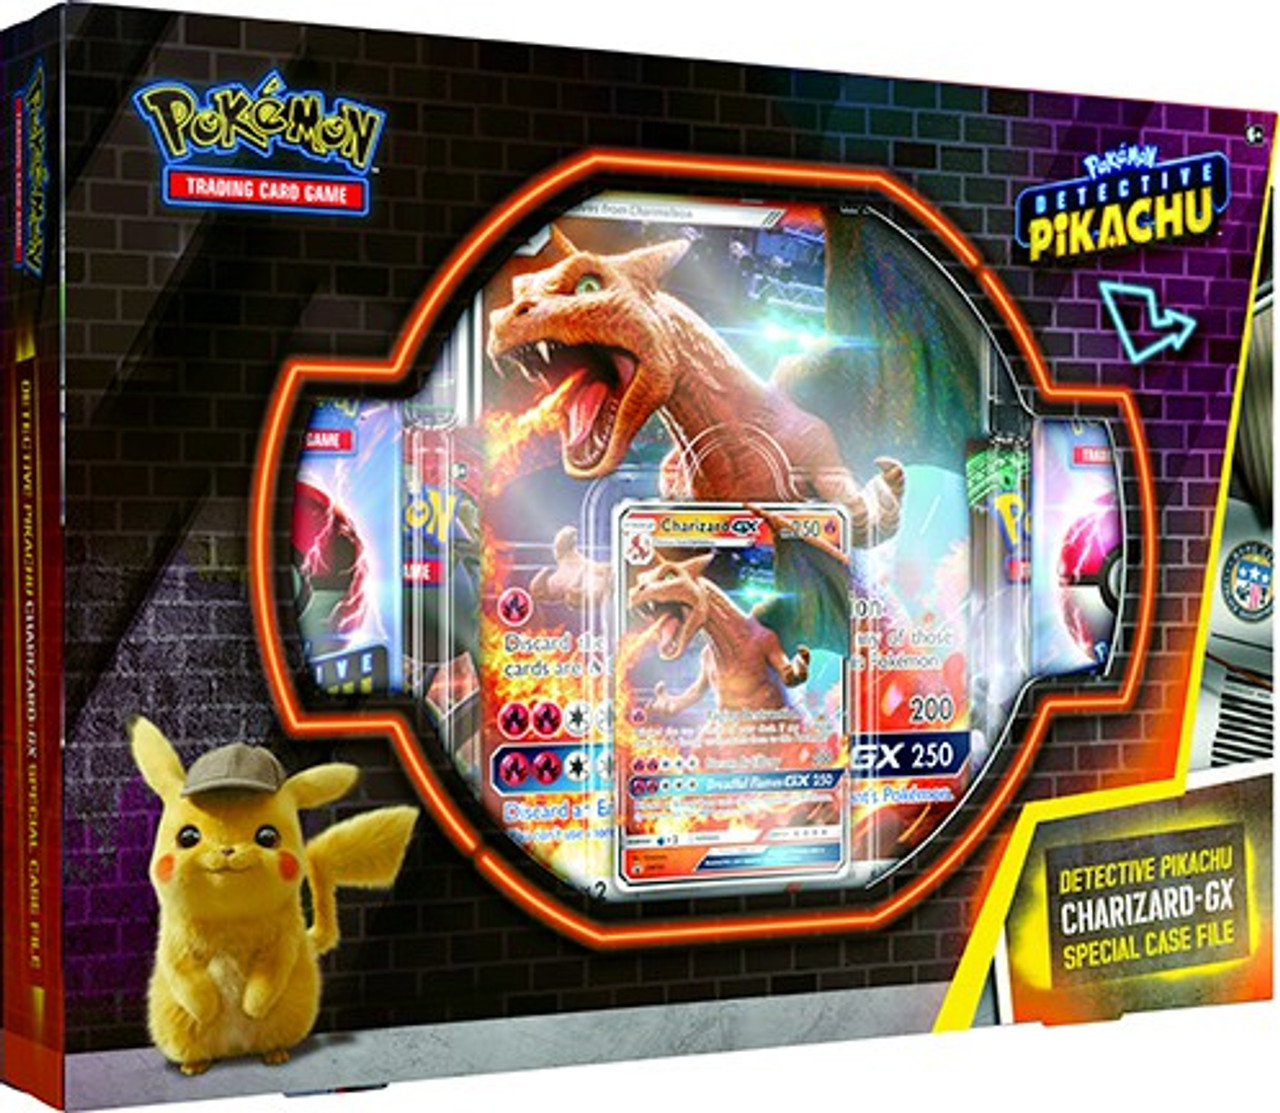 Pokemon Detective Pikachu Charizard Gx Special Case File Pokemon Usa